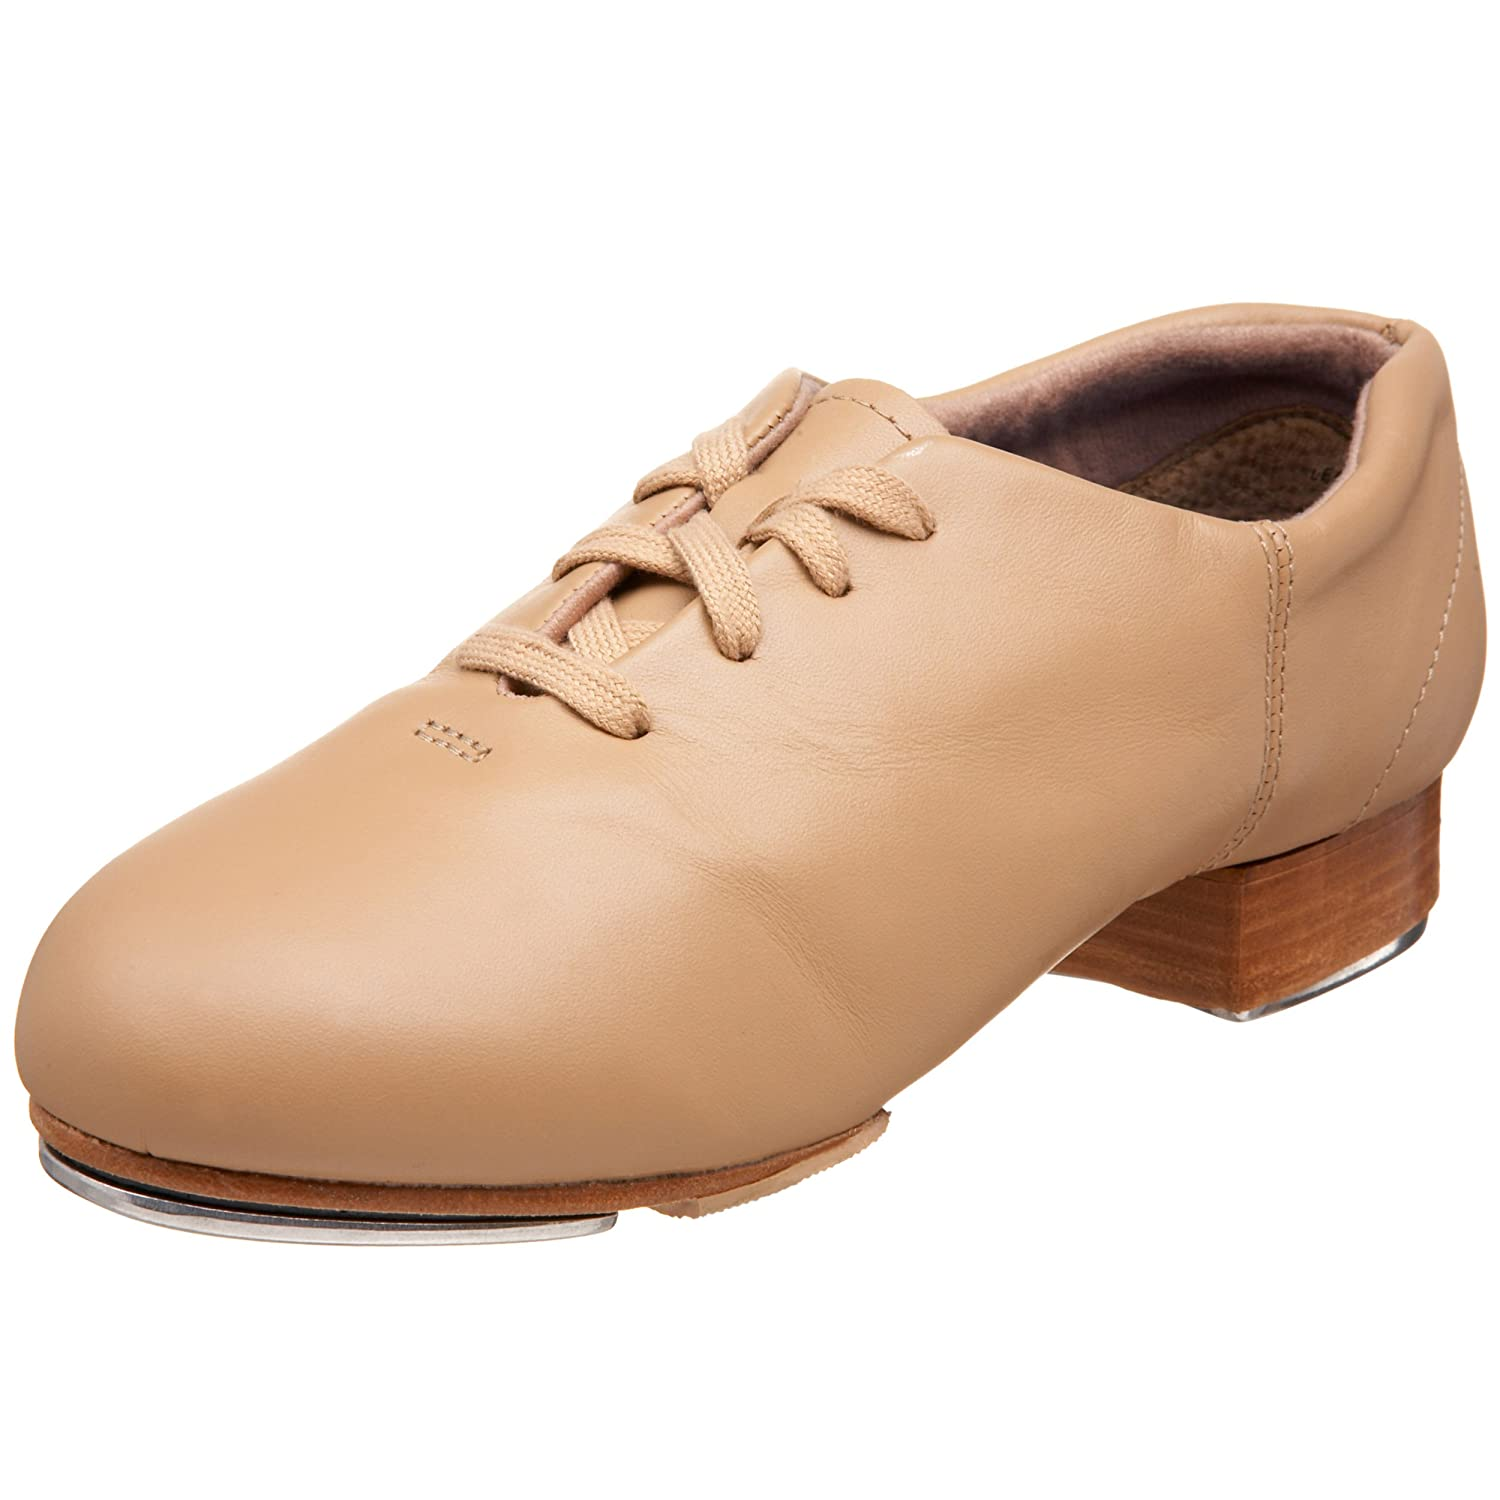 Capezio Women's CG16 Flex Mastr Tap Shoe B002CO31WQ 11 W US|Caramel